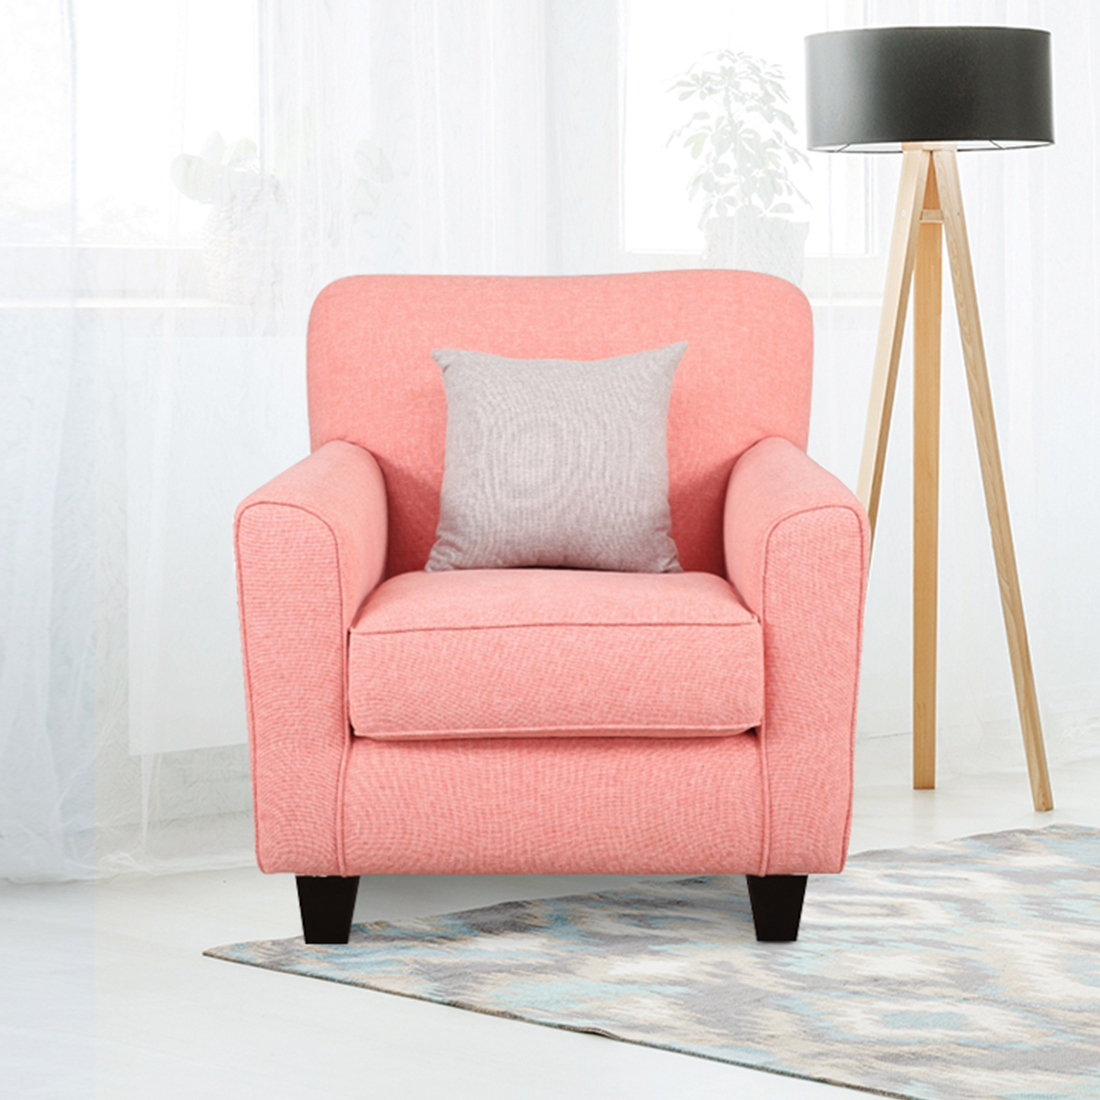 Cadence Fabric Single Seater Sofa in Coral Colour by HomeTown